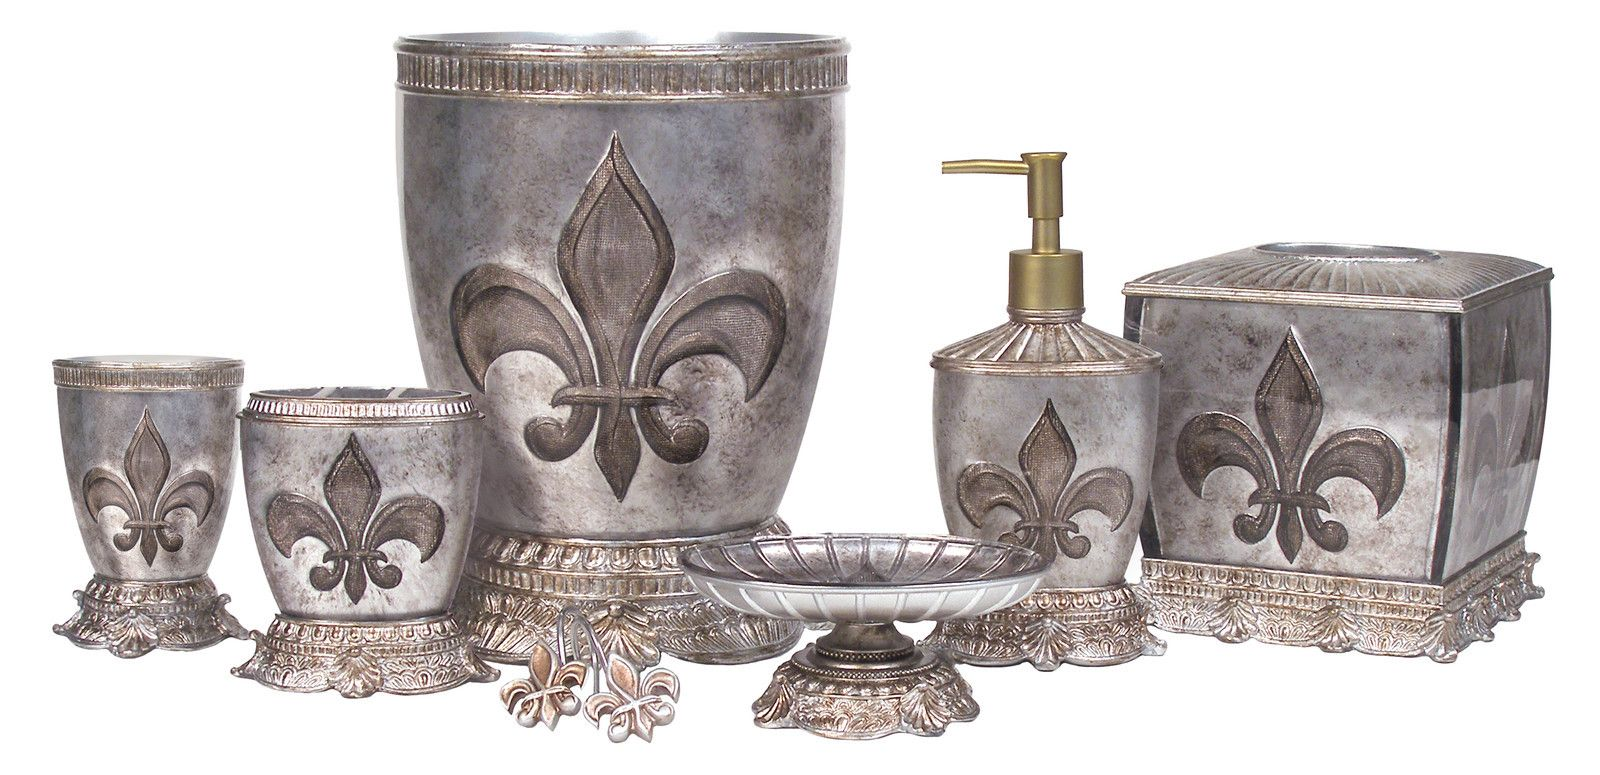 French Flair Luxe Fleur De Lis Bath Accessories Bathroom Collection Ebay